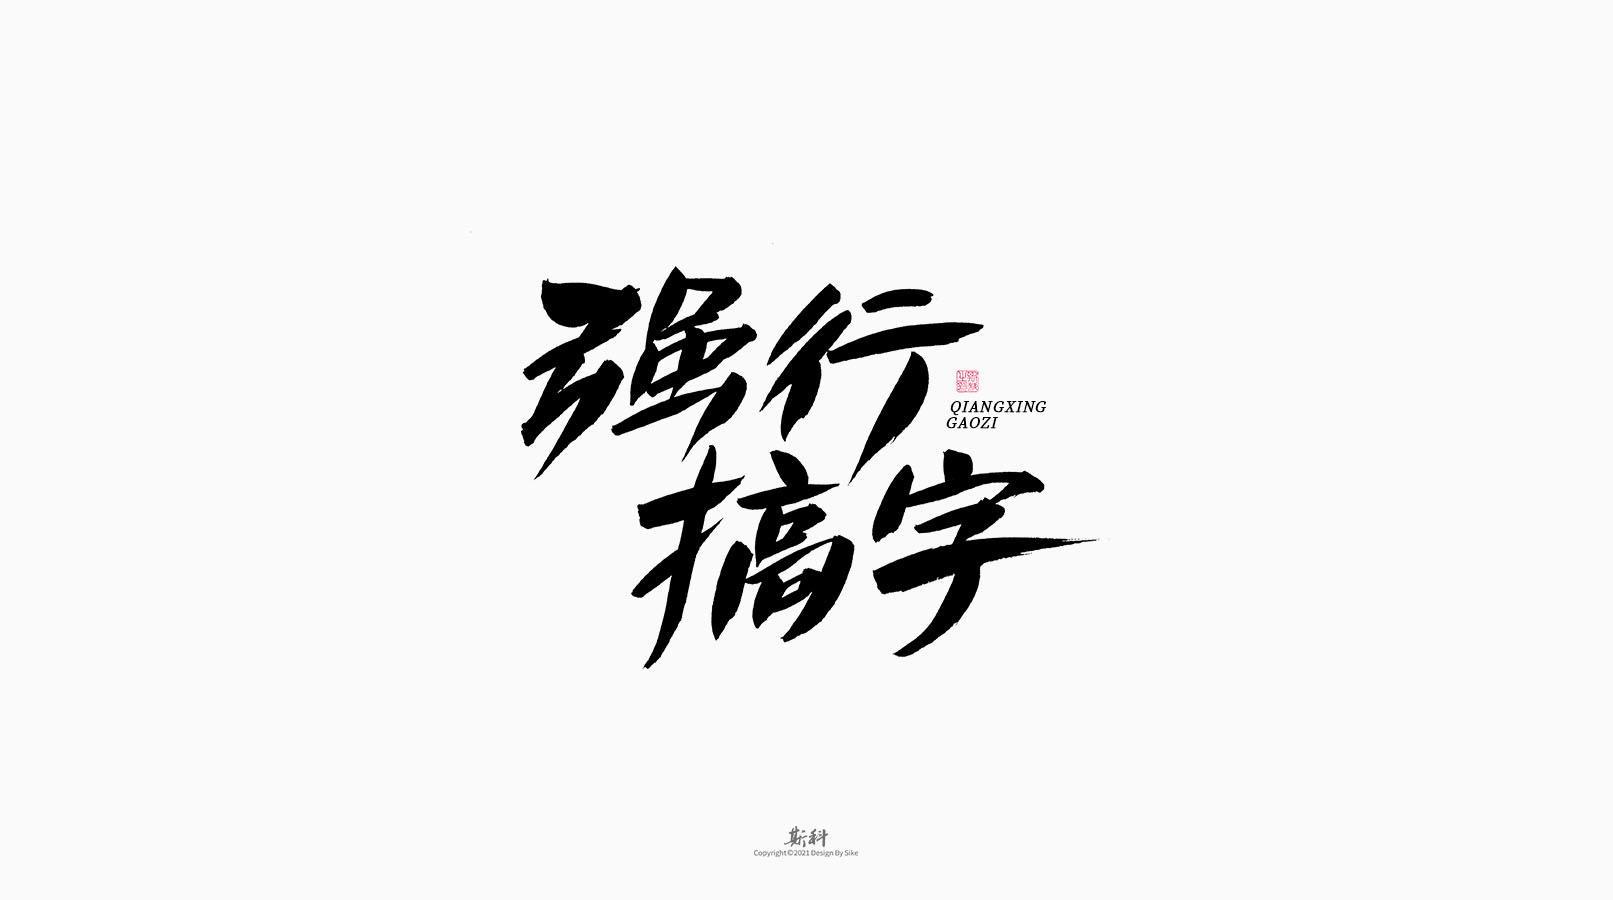 18P Collection of the latest Chinese font design schemes in 2021 #.100